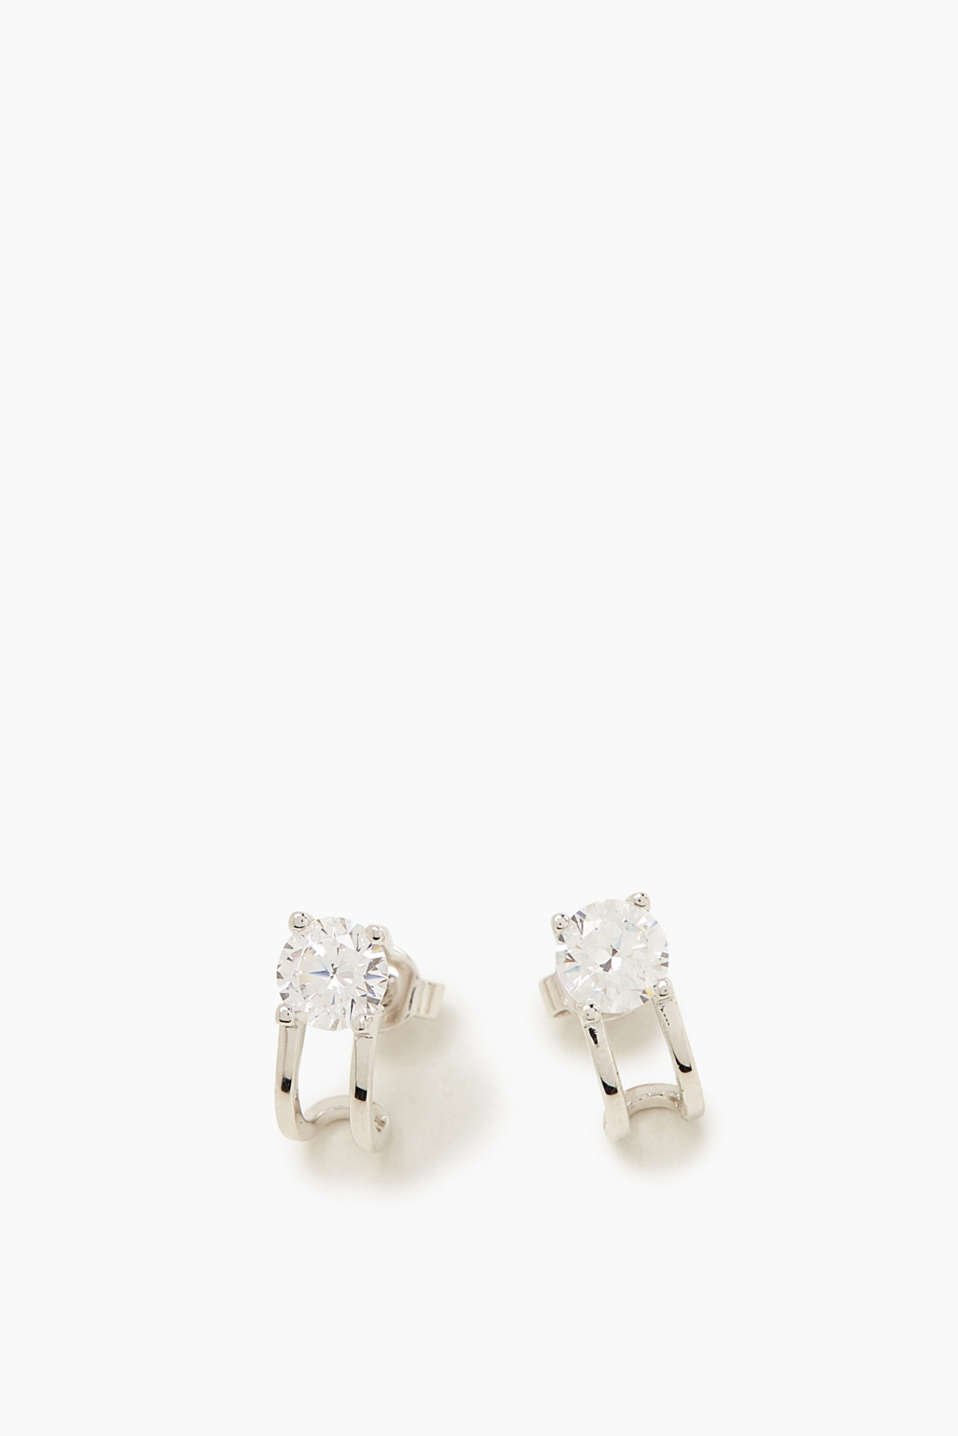 Earrings with zirconia, sterling silver